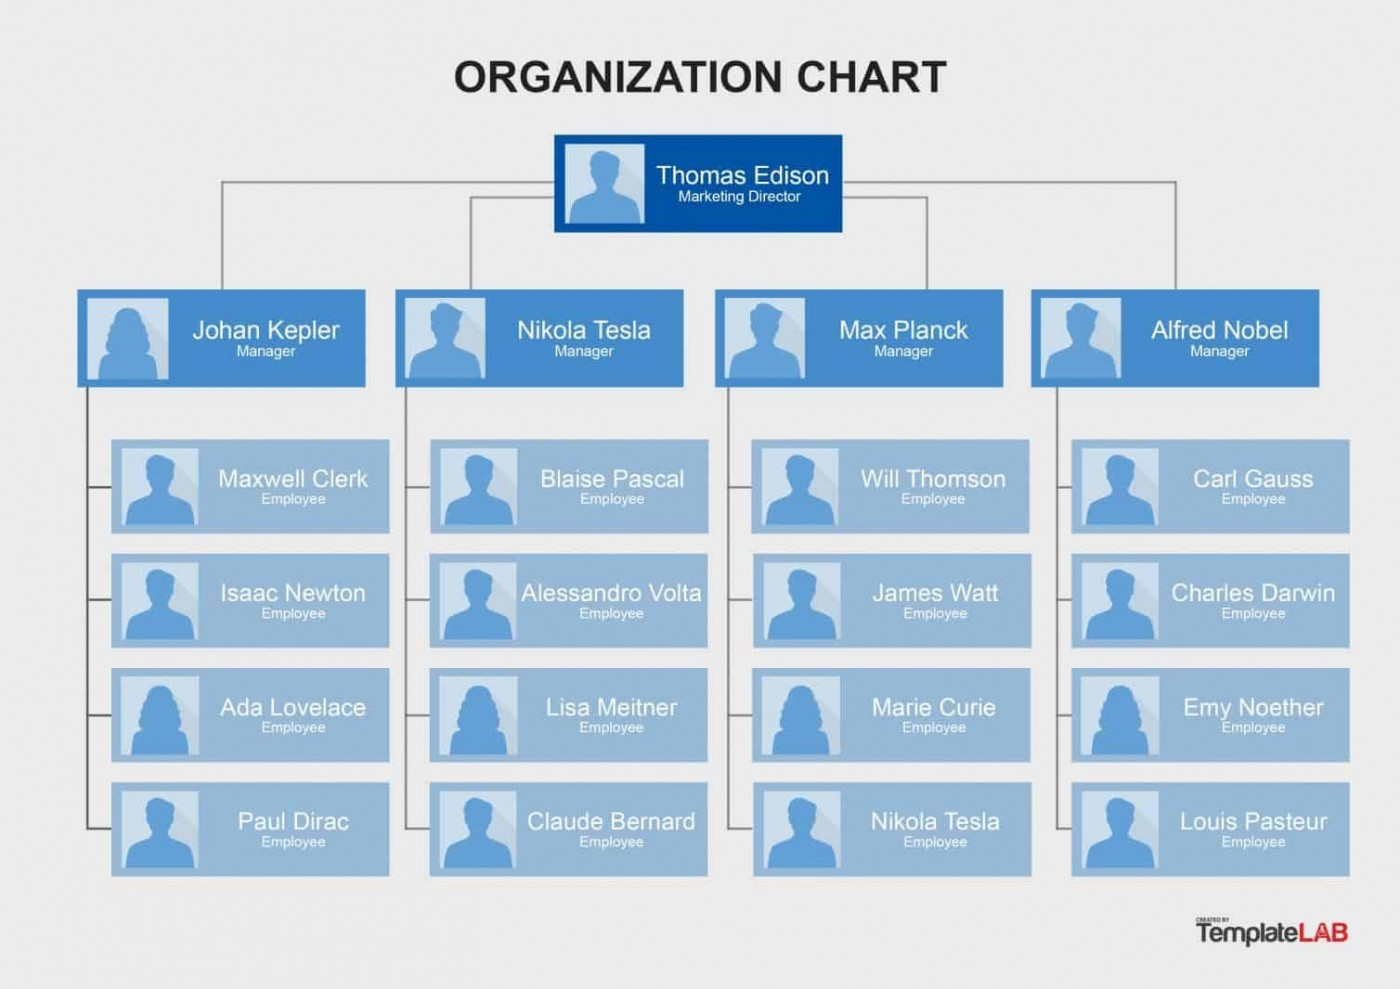 009 Rare Organizational Chart Template Excel Image  Organization Download Org1400